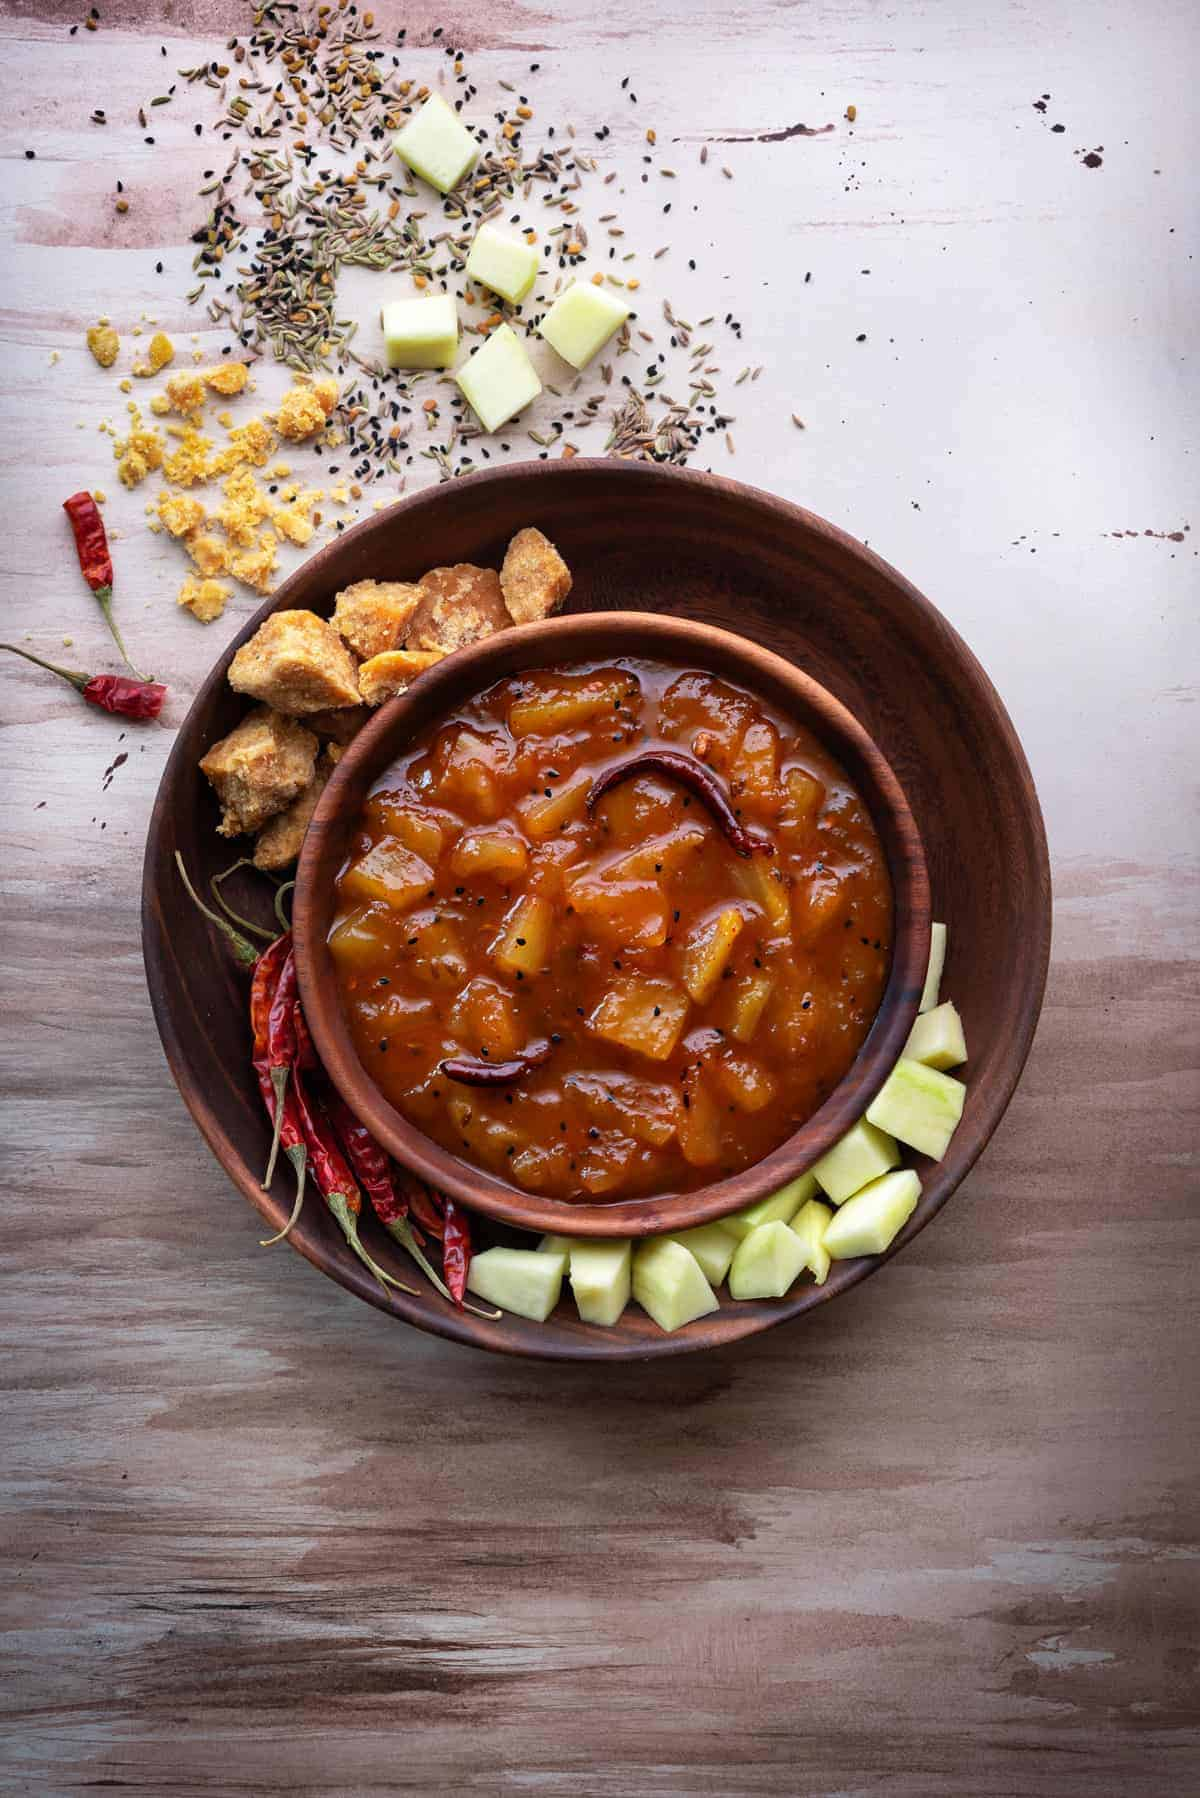 Sweet raw mango chutney in wooden bowl with jaggery, mango and red chillies spread around.